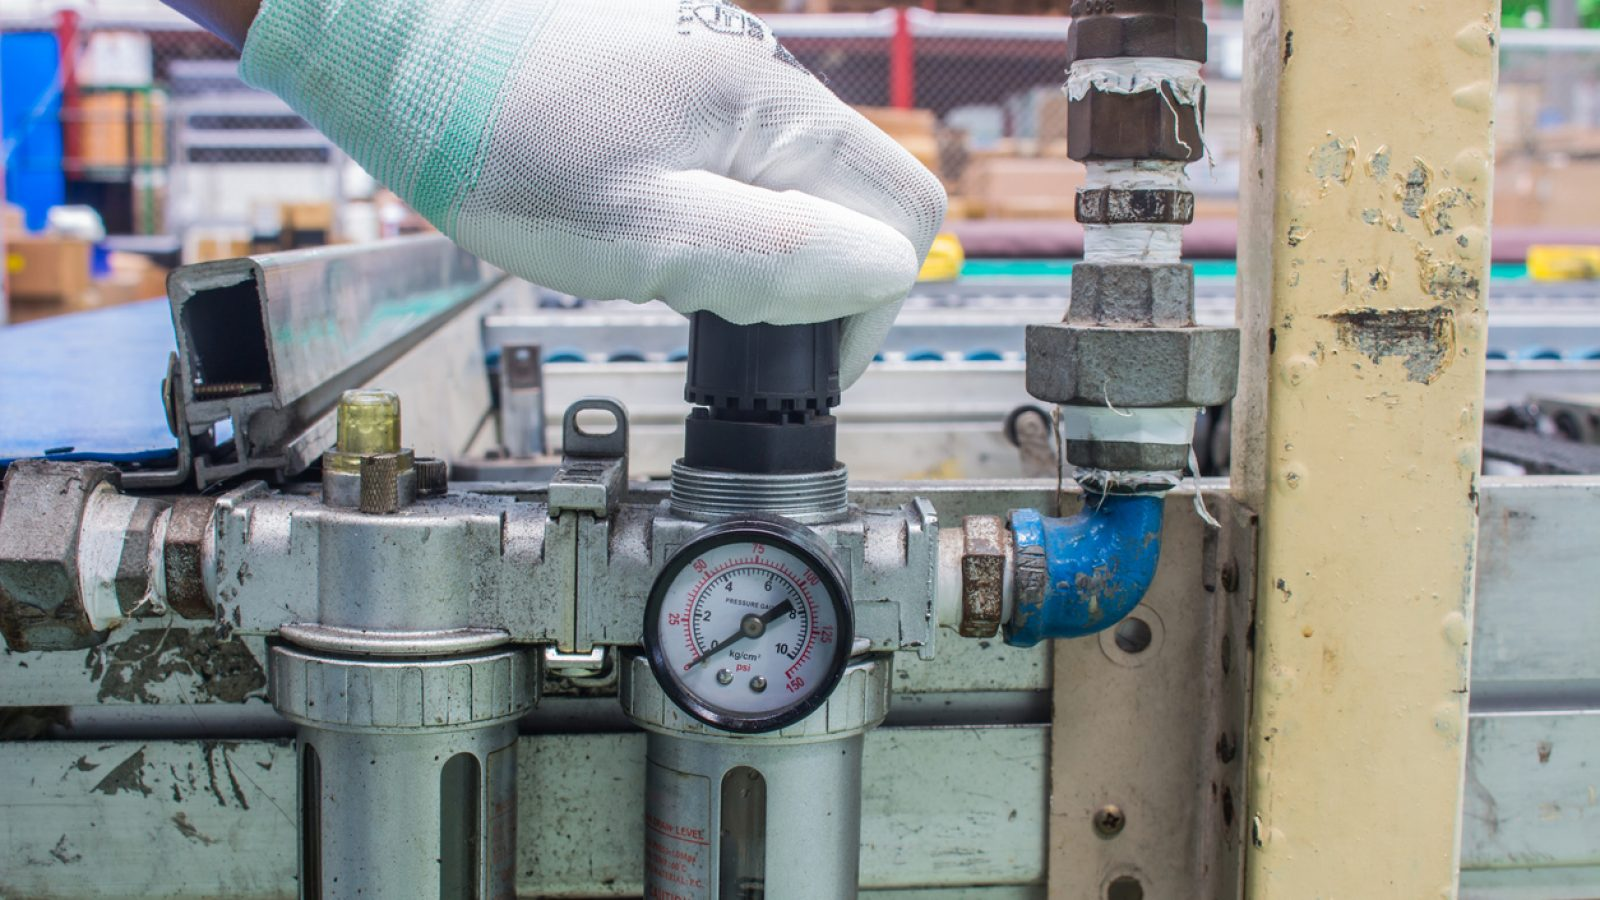 The hand of technician adjust the pressure setting of the wind on regulator. In the pneumatic system